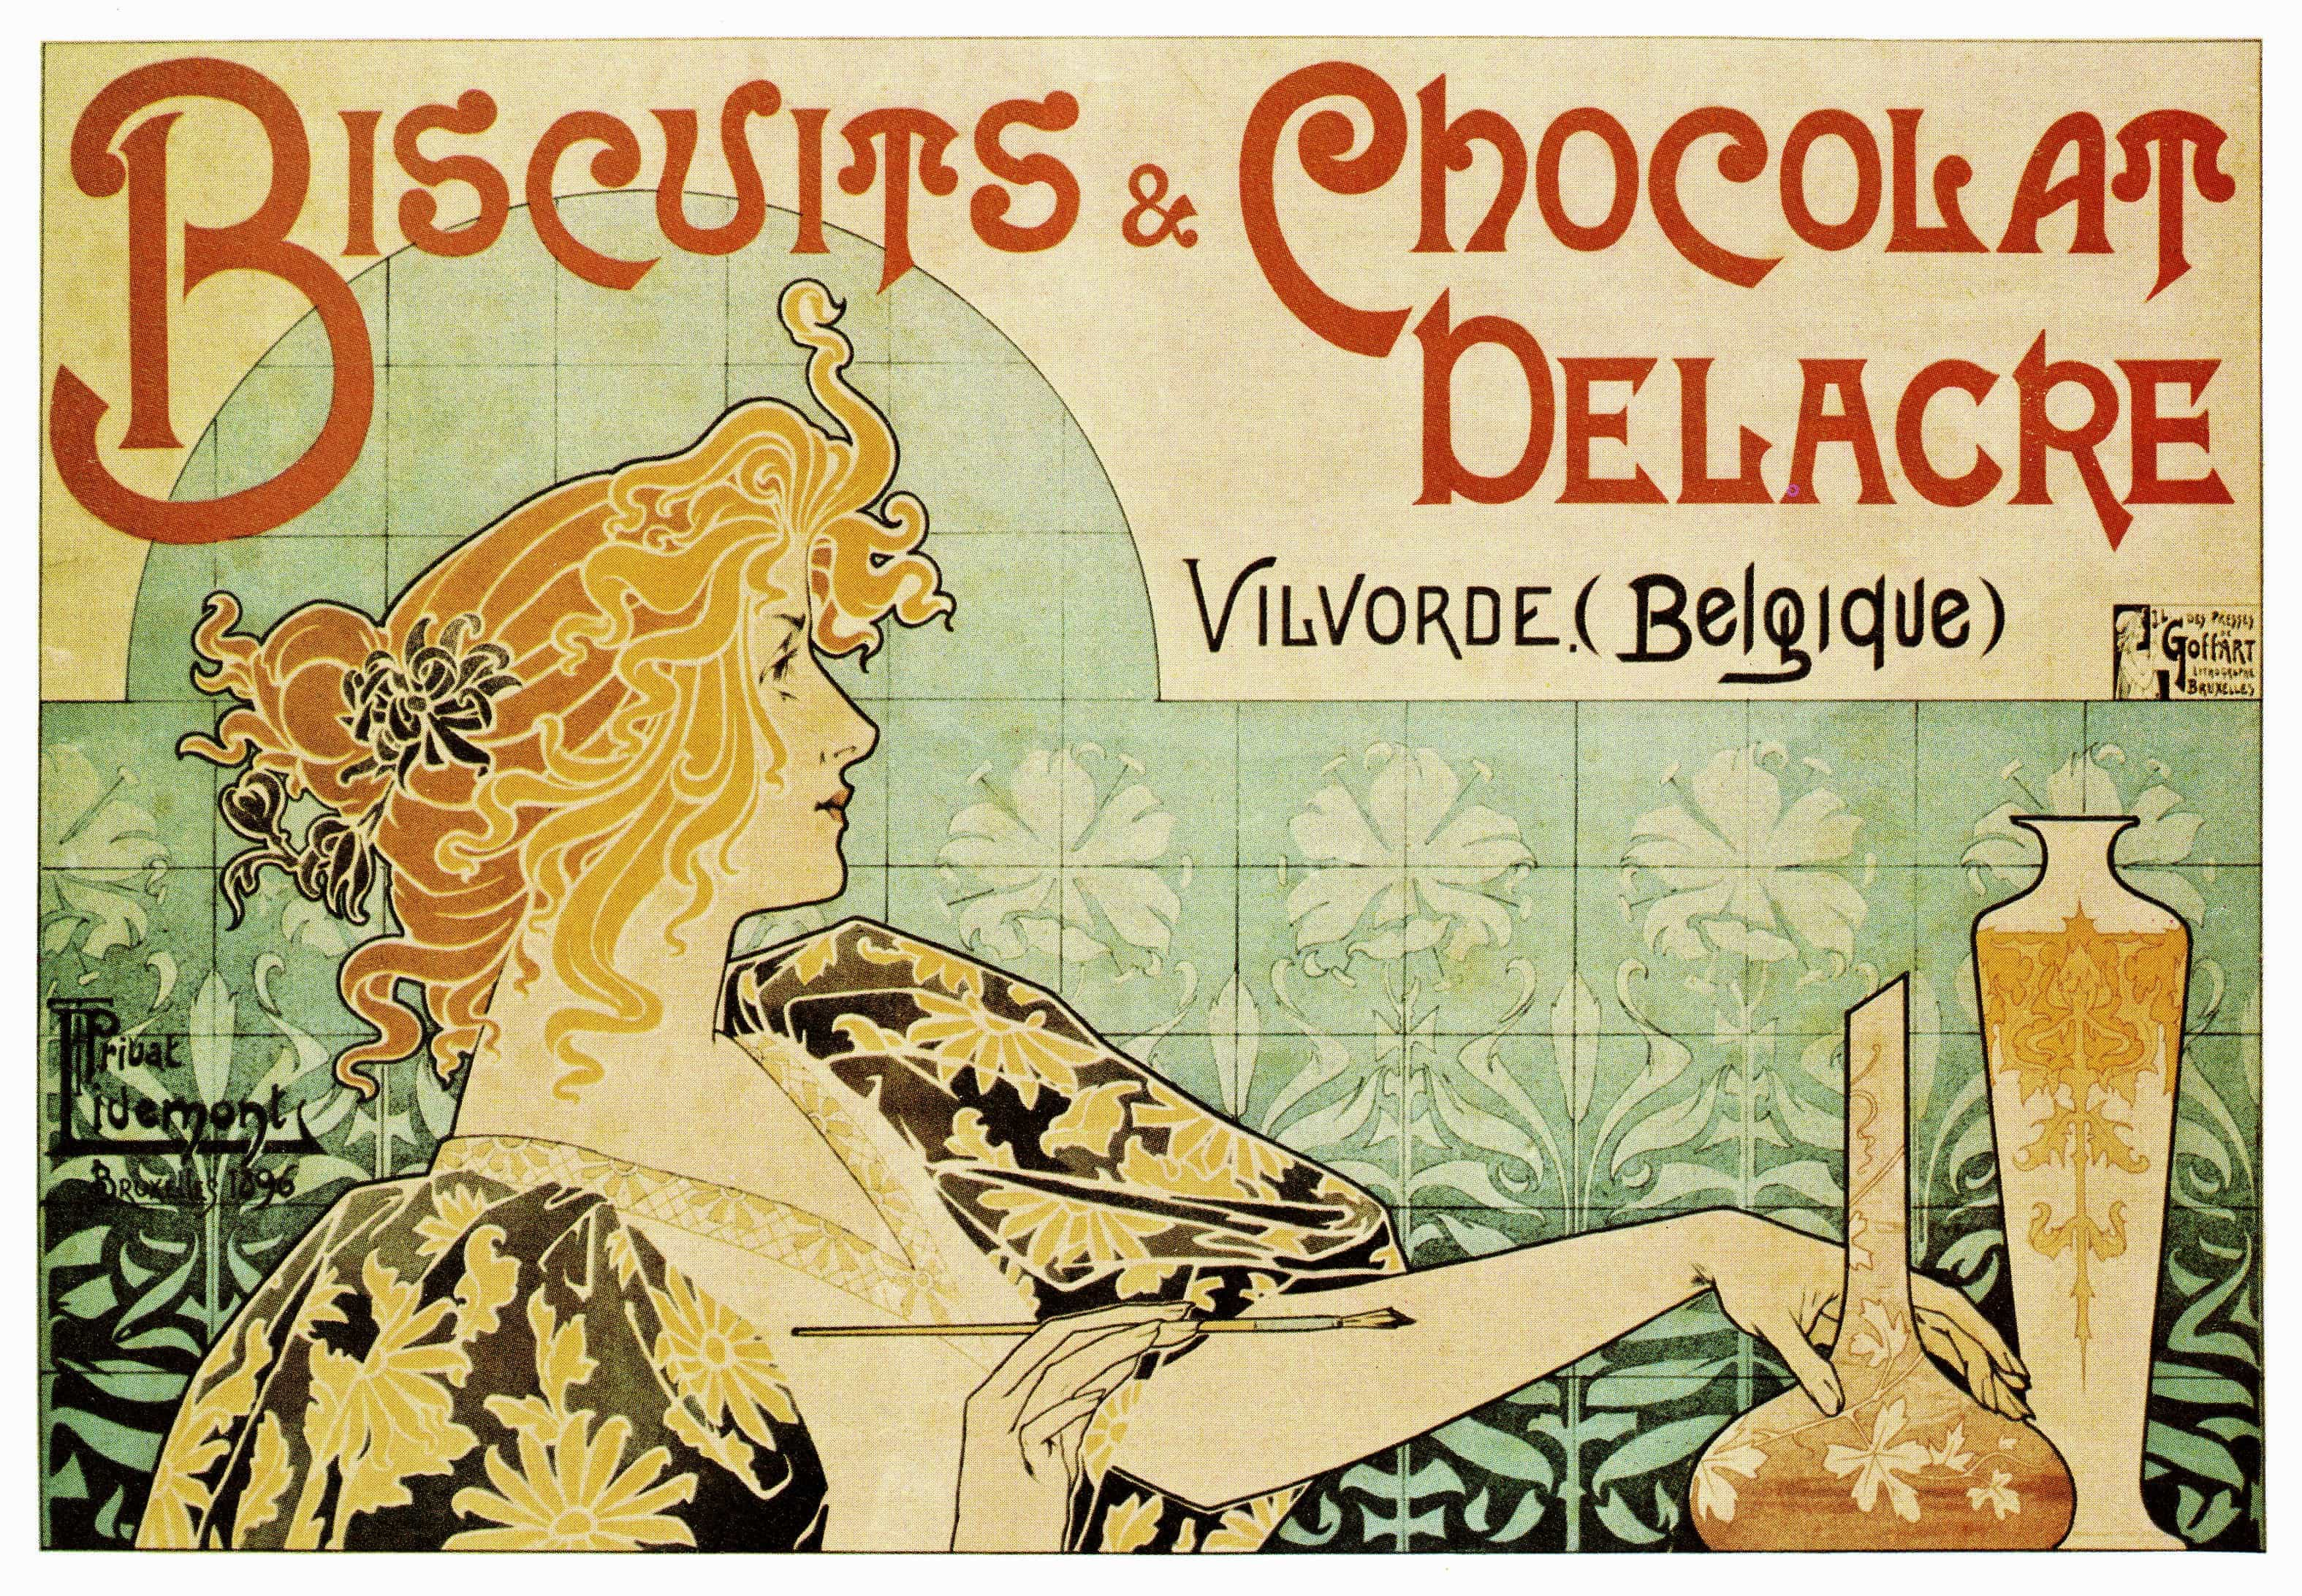 Biscuits chocolat delacre poster by henri privat livemont for Posters art prints